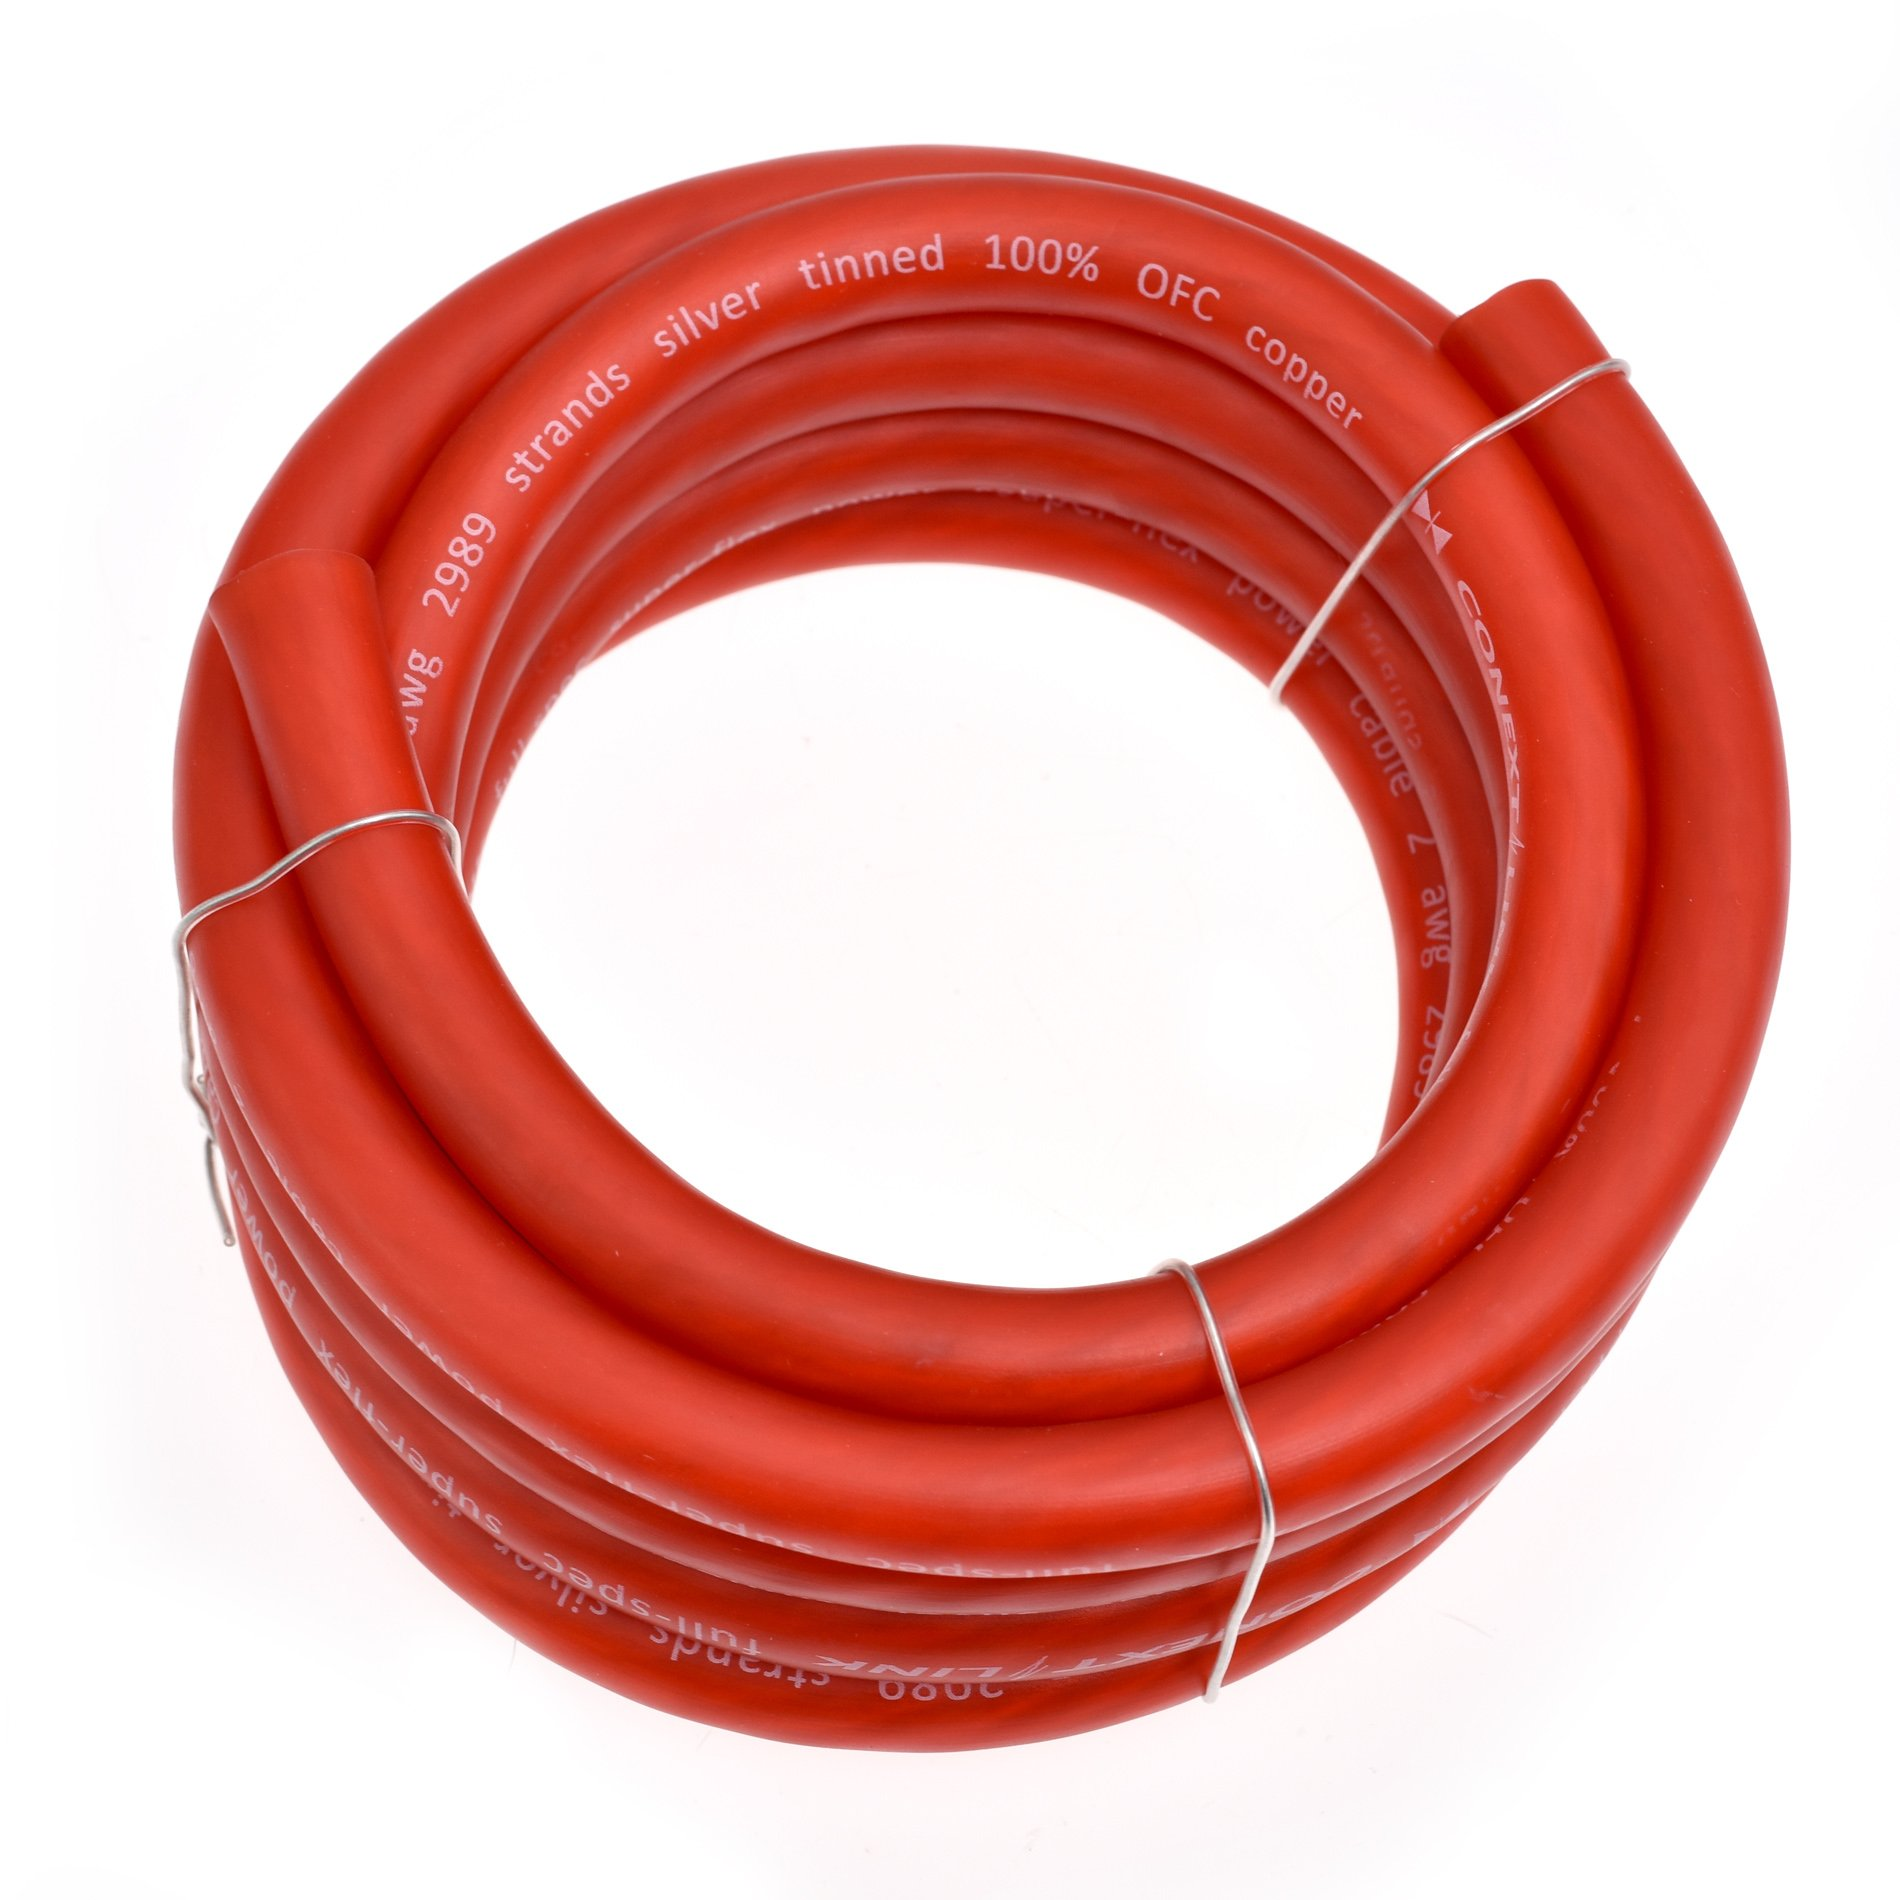 Conext Link 10 FT 2 AWG GA Full Gauge Battery Power Cable Ground Wire Frost Red OFC Copper